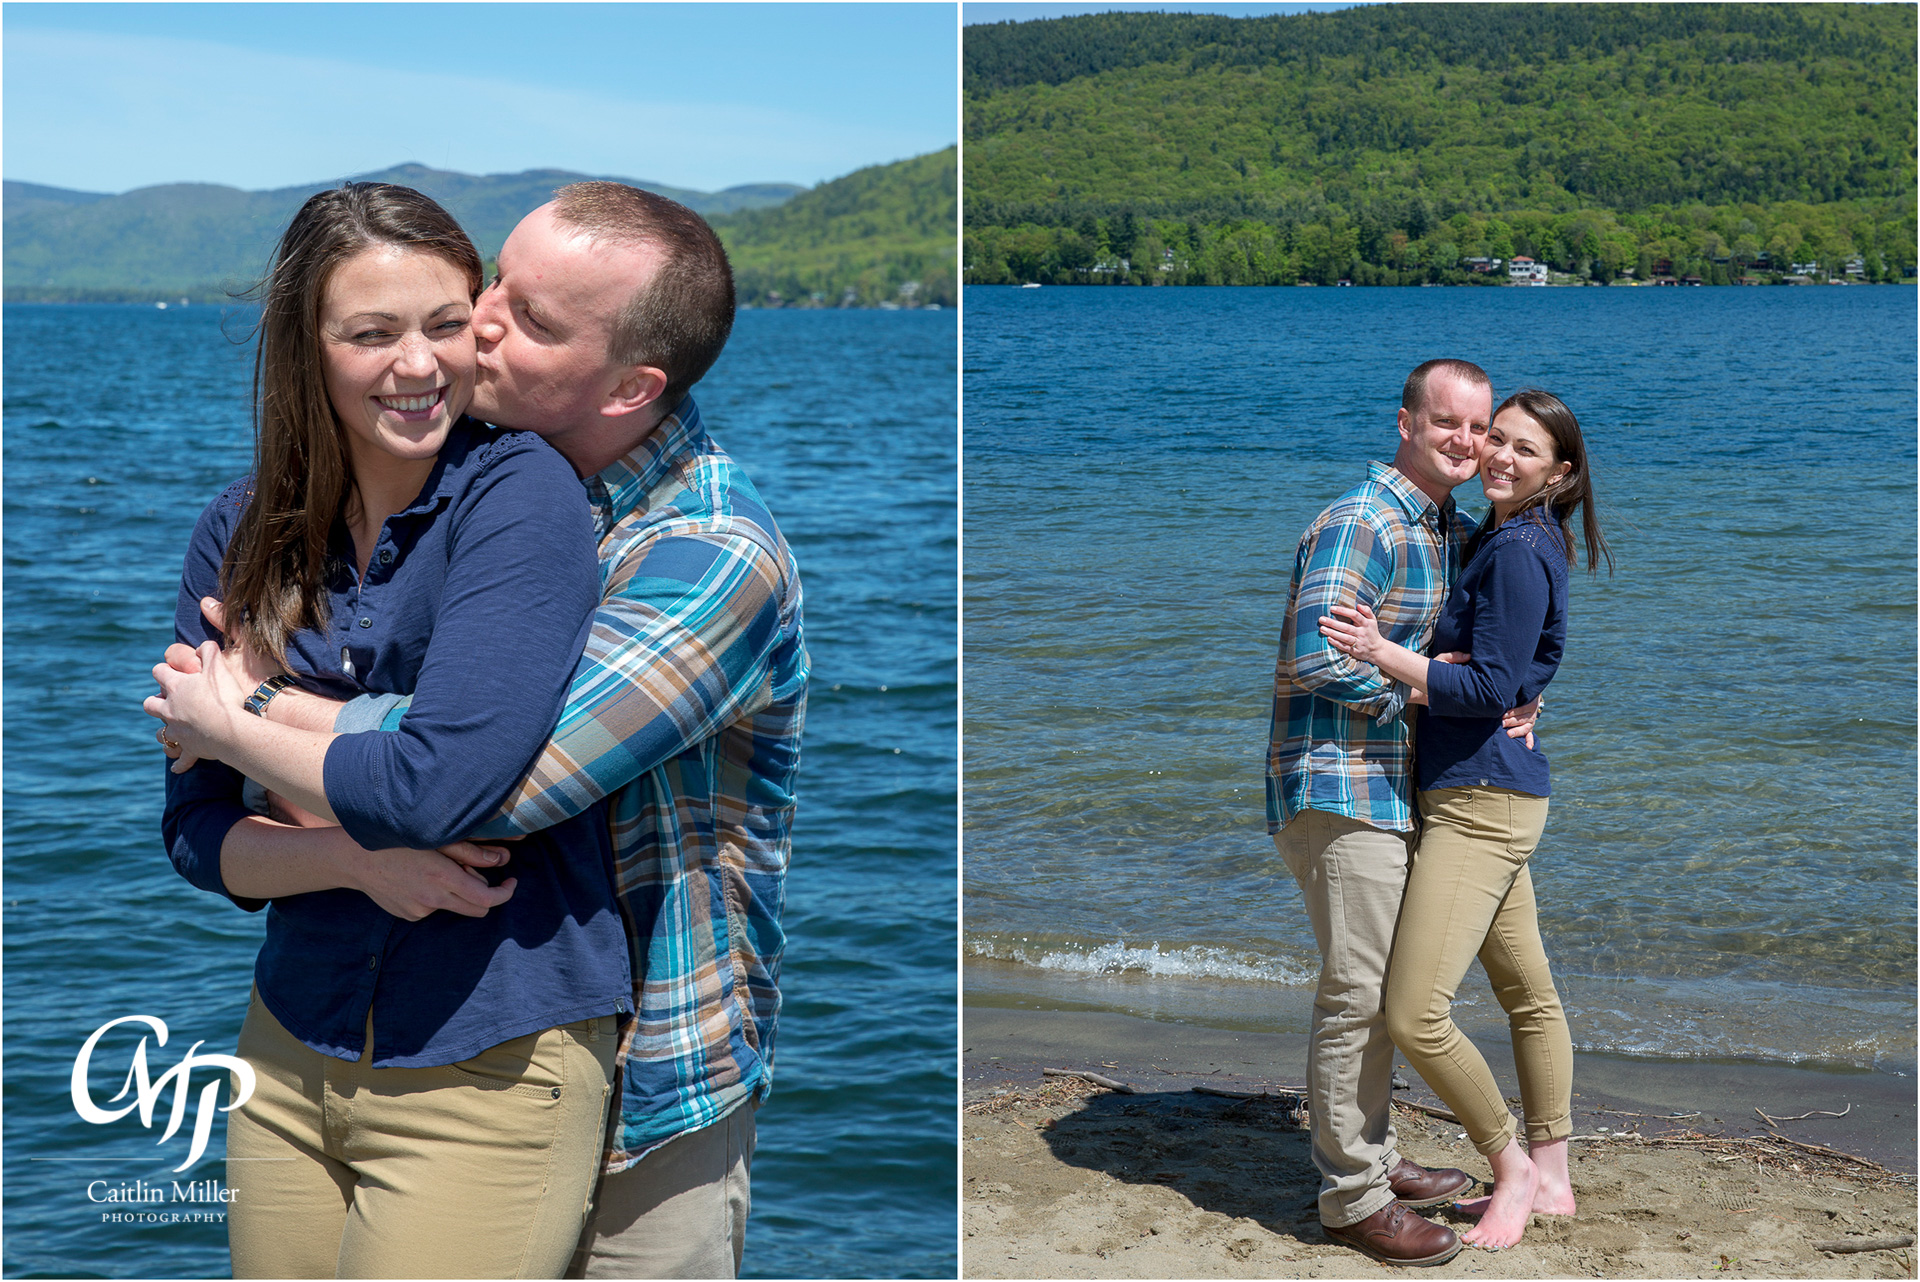 haley-2.jpg from Haley and Evan's engagement in Lake George NY by Saratoga Wedding Photographer Caitlin Miller Photography. Lake George Wedding Photographer. Adirondack wedding photographer. Albany wedding photographer. Lake Placid Wedding Photographer. Saratoga Wedding Photographer